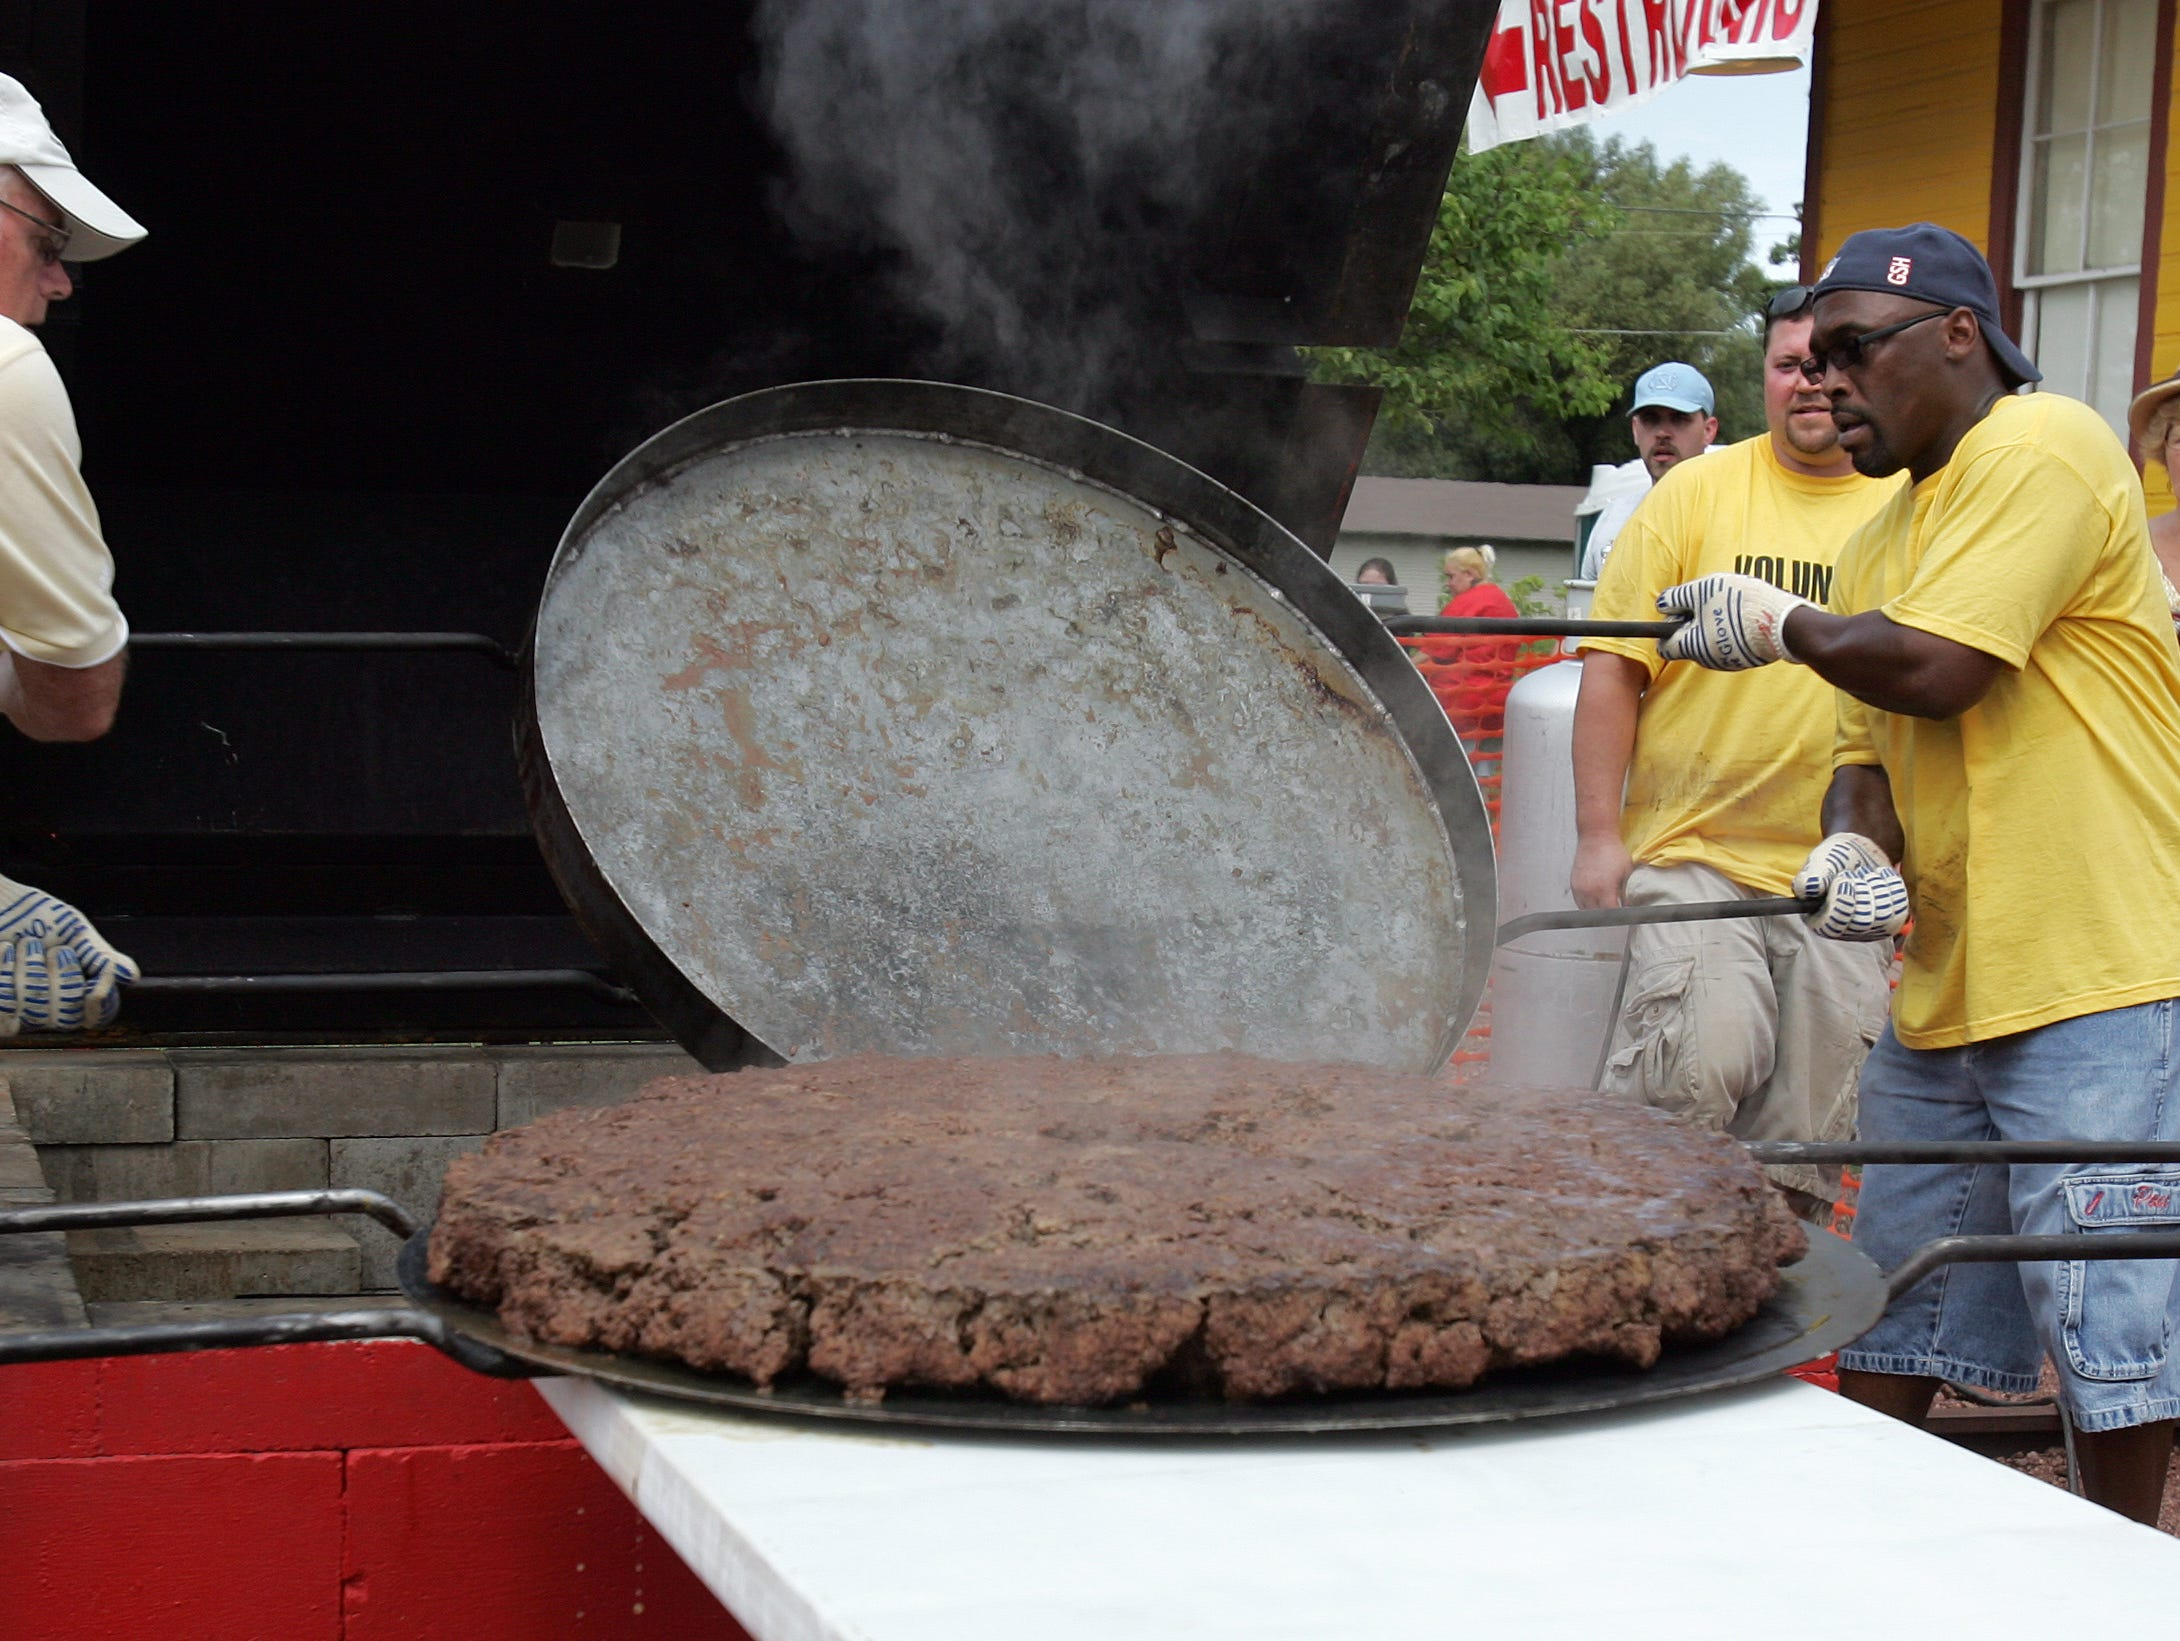 Jim Campbell (left) of Seymour and Elston Taylor of Pulaski work with the 150 pound hamburger during the 2012 Annual Hamburger Festival in Seymour, Wisconsin on Saturday, August 4, 2012. Get Cheezy with Hamburger Charlie was the theme as the 150 pound hamburger was topped with cheese this year.